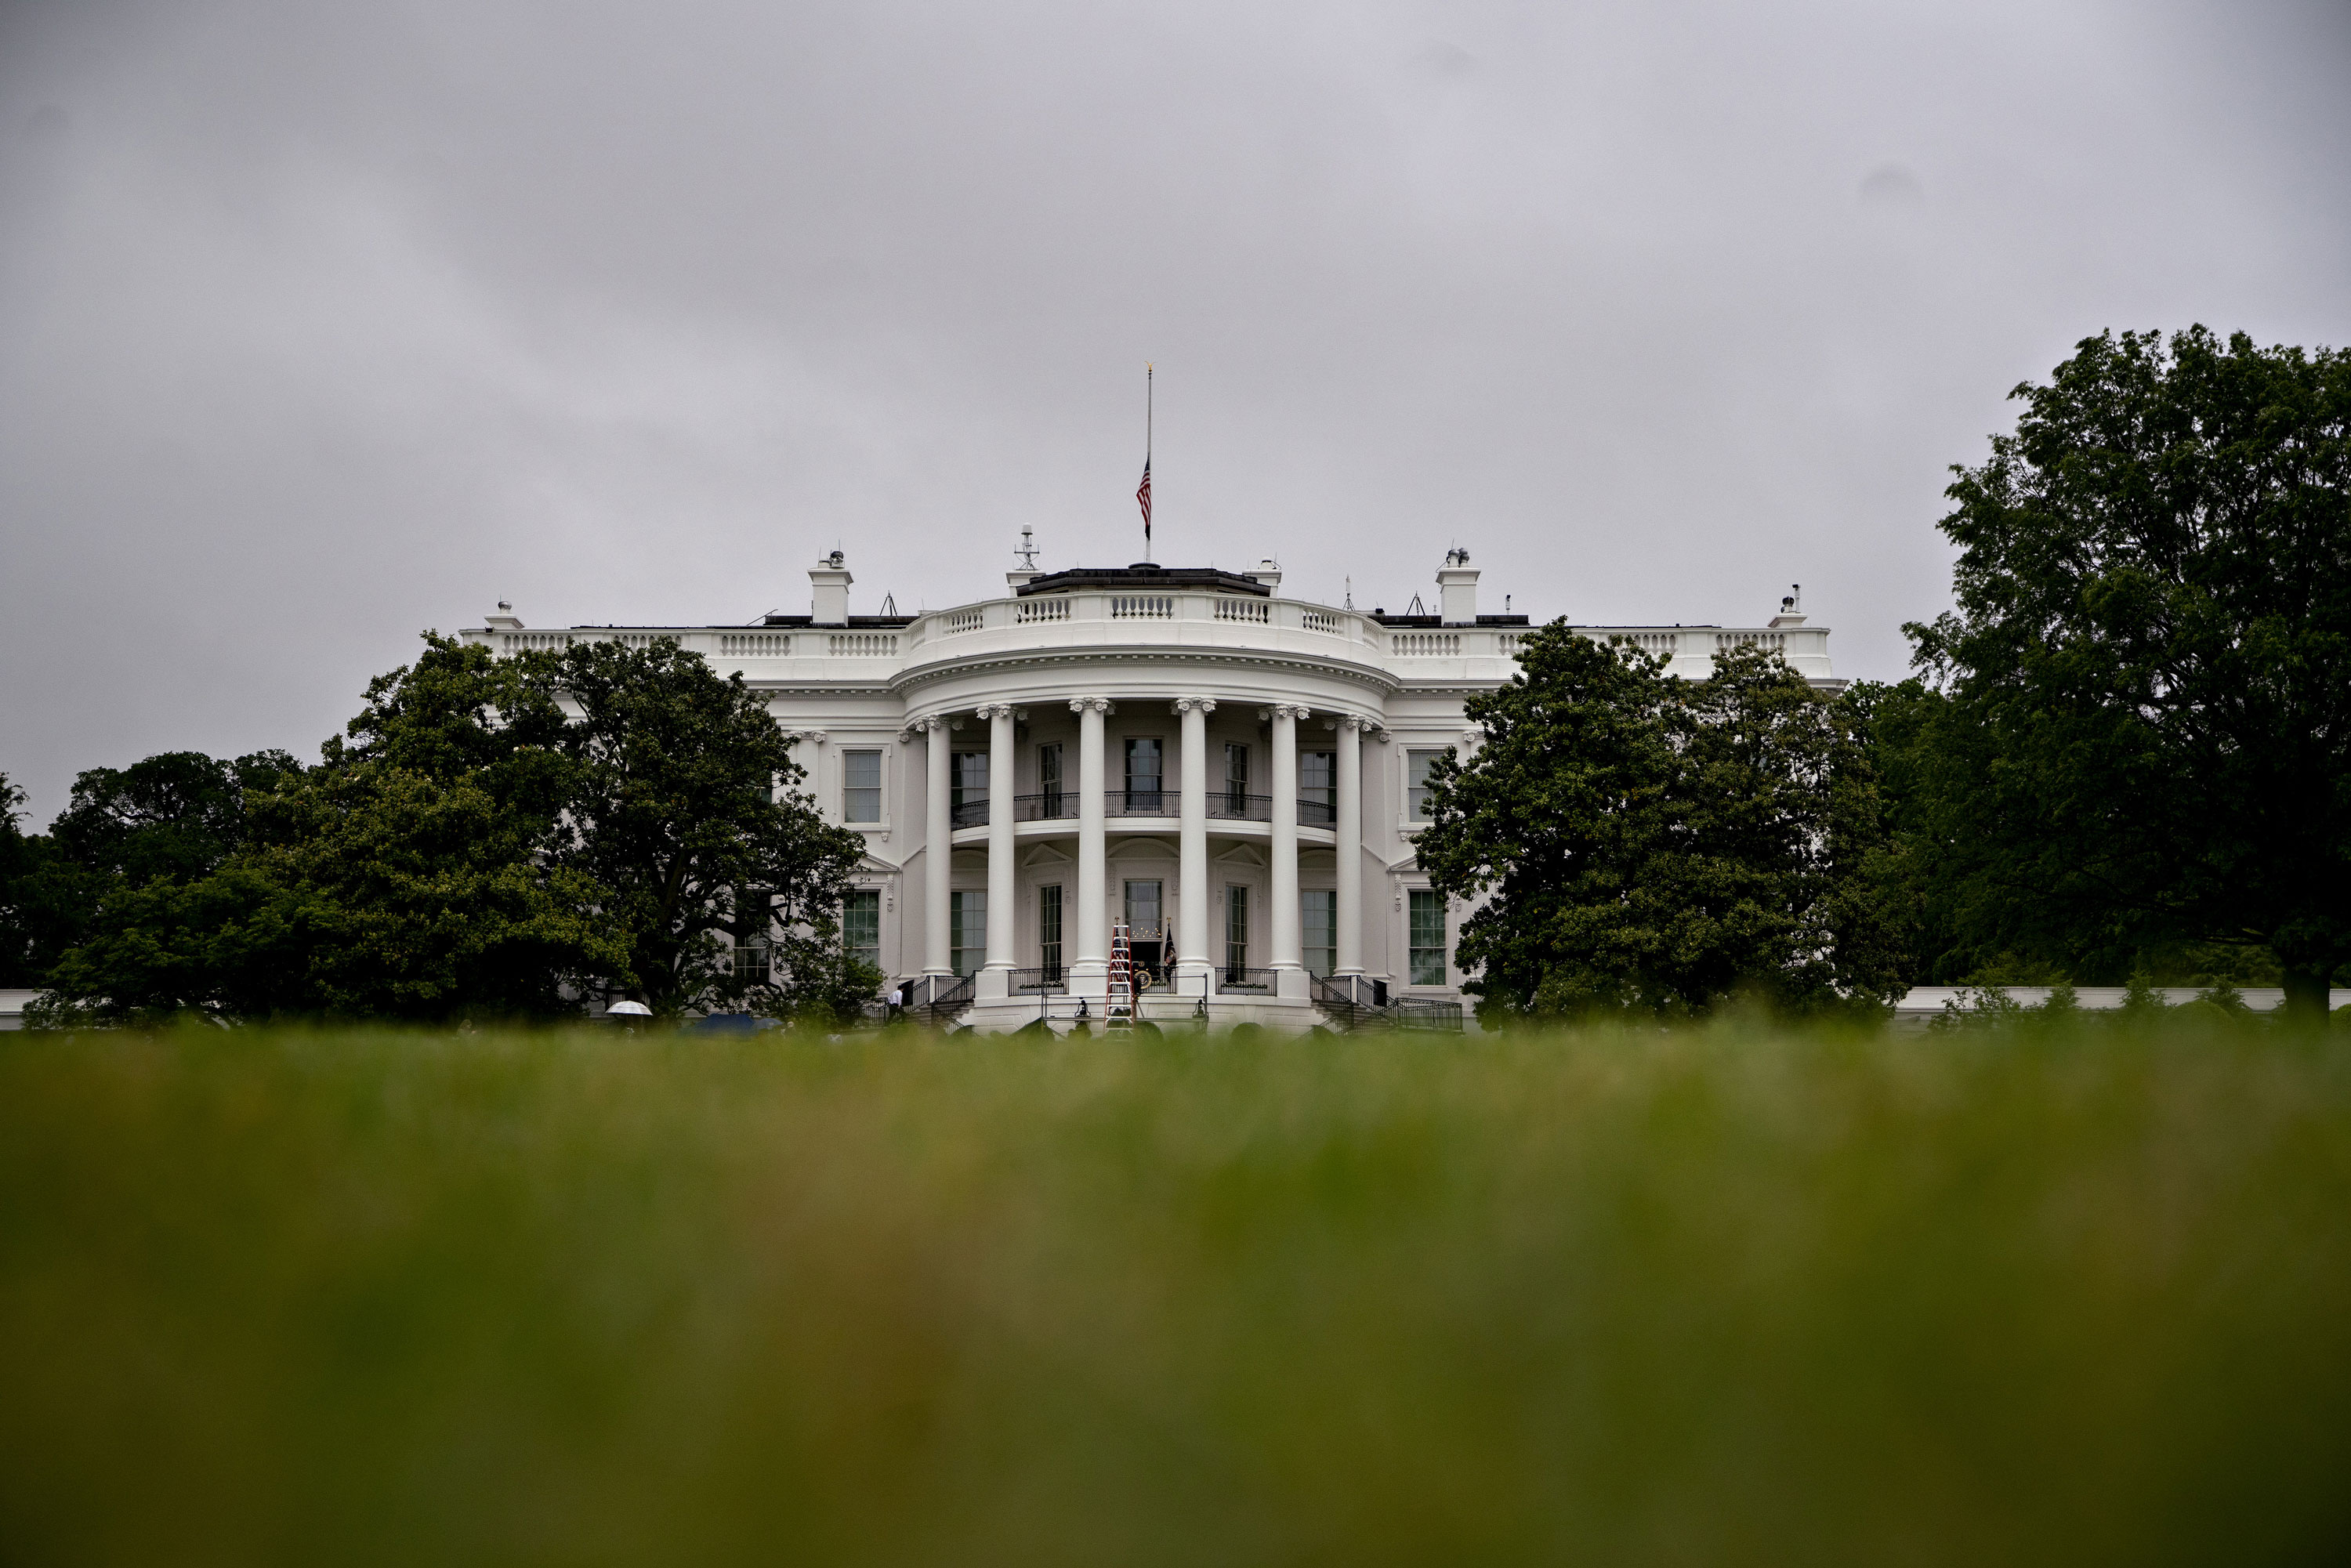 The White House stands past the South Lawn in Washington, D.C., on May 22.